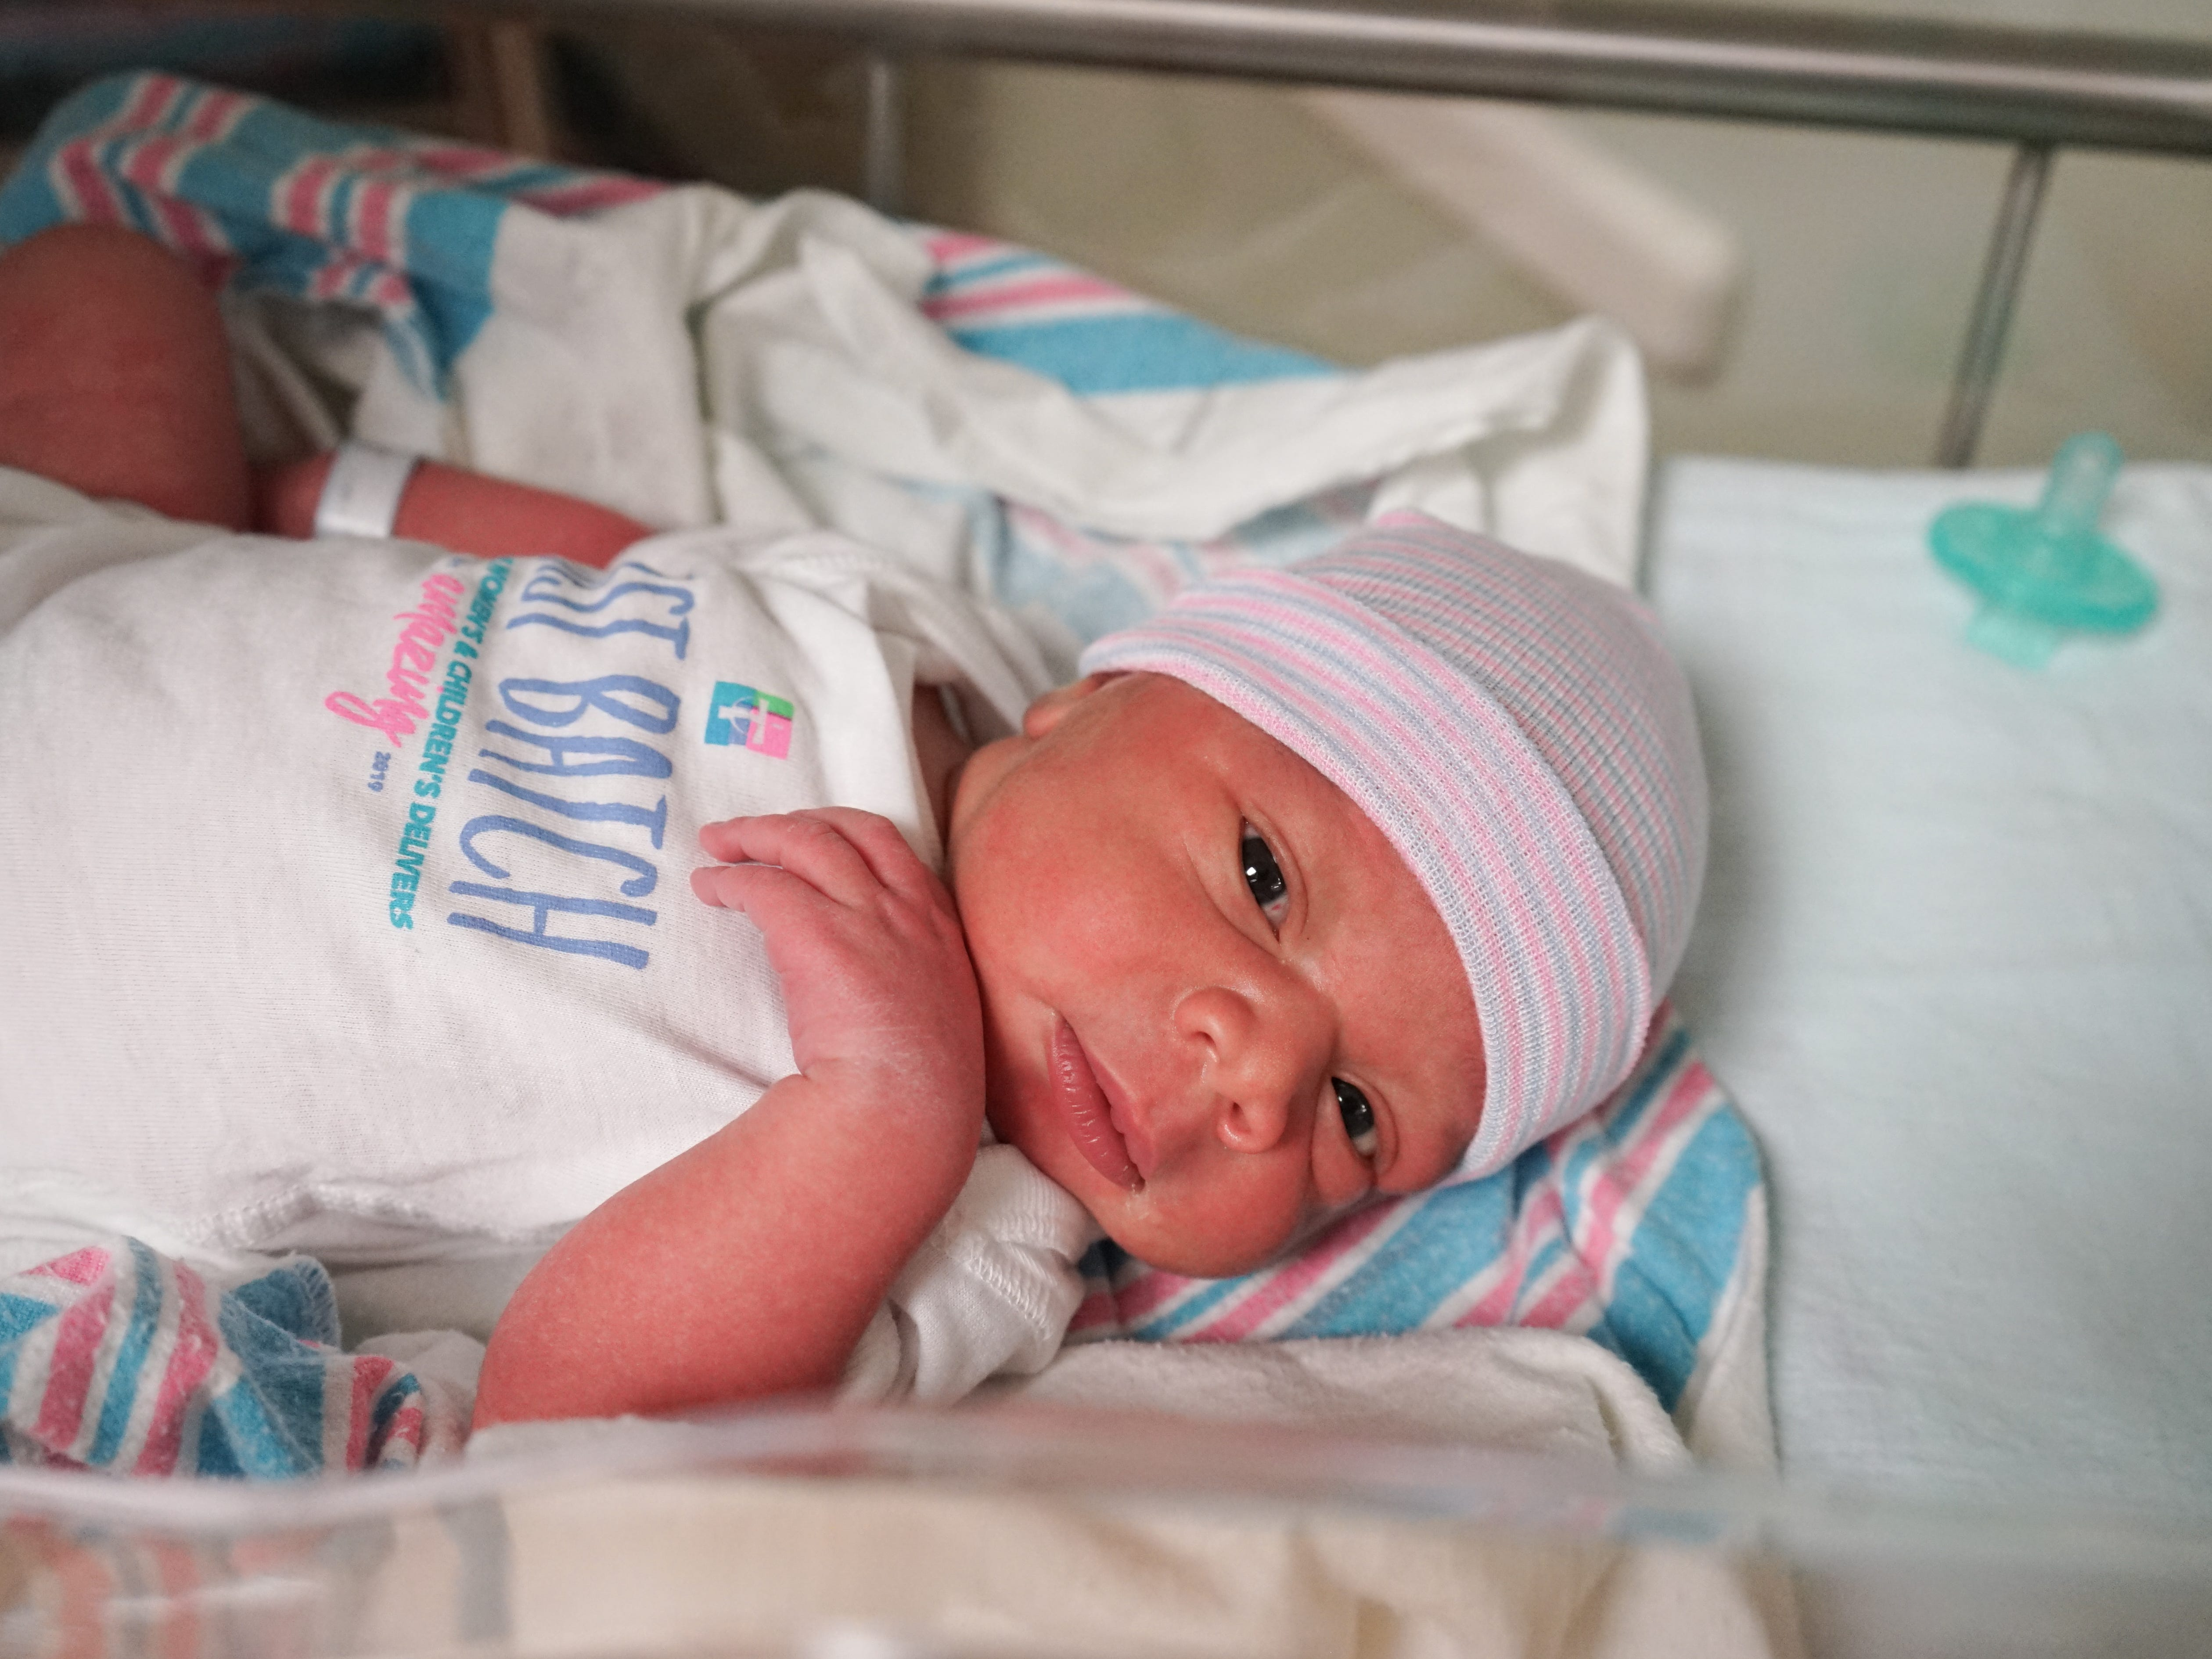 "Abigail Meagher entered the world at 12:51 a.m. on Friday, March 1, becoming the first baby born at Our Lady of Lourdes Women's & Children's Hospital. She weighed 7 pounds, 1.6 ounces and was 19 ¼ inches. All babies born at the hospital on Friday, March 1, received a special ""first batch"" onesie commemorating the hospital's first day as part of the Our Lady of Lourdes system."